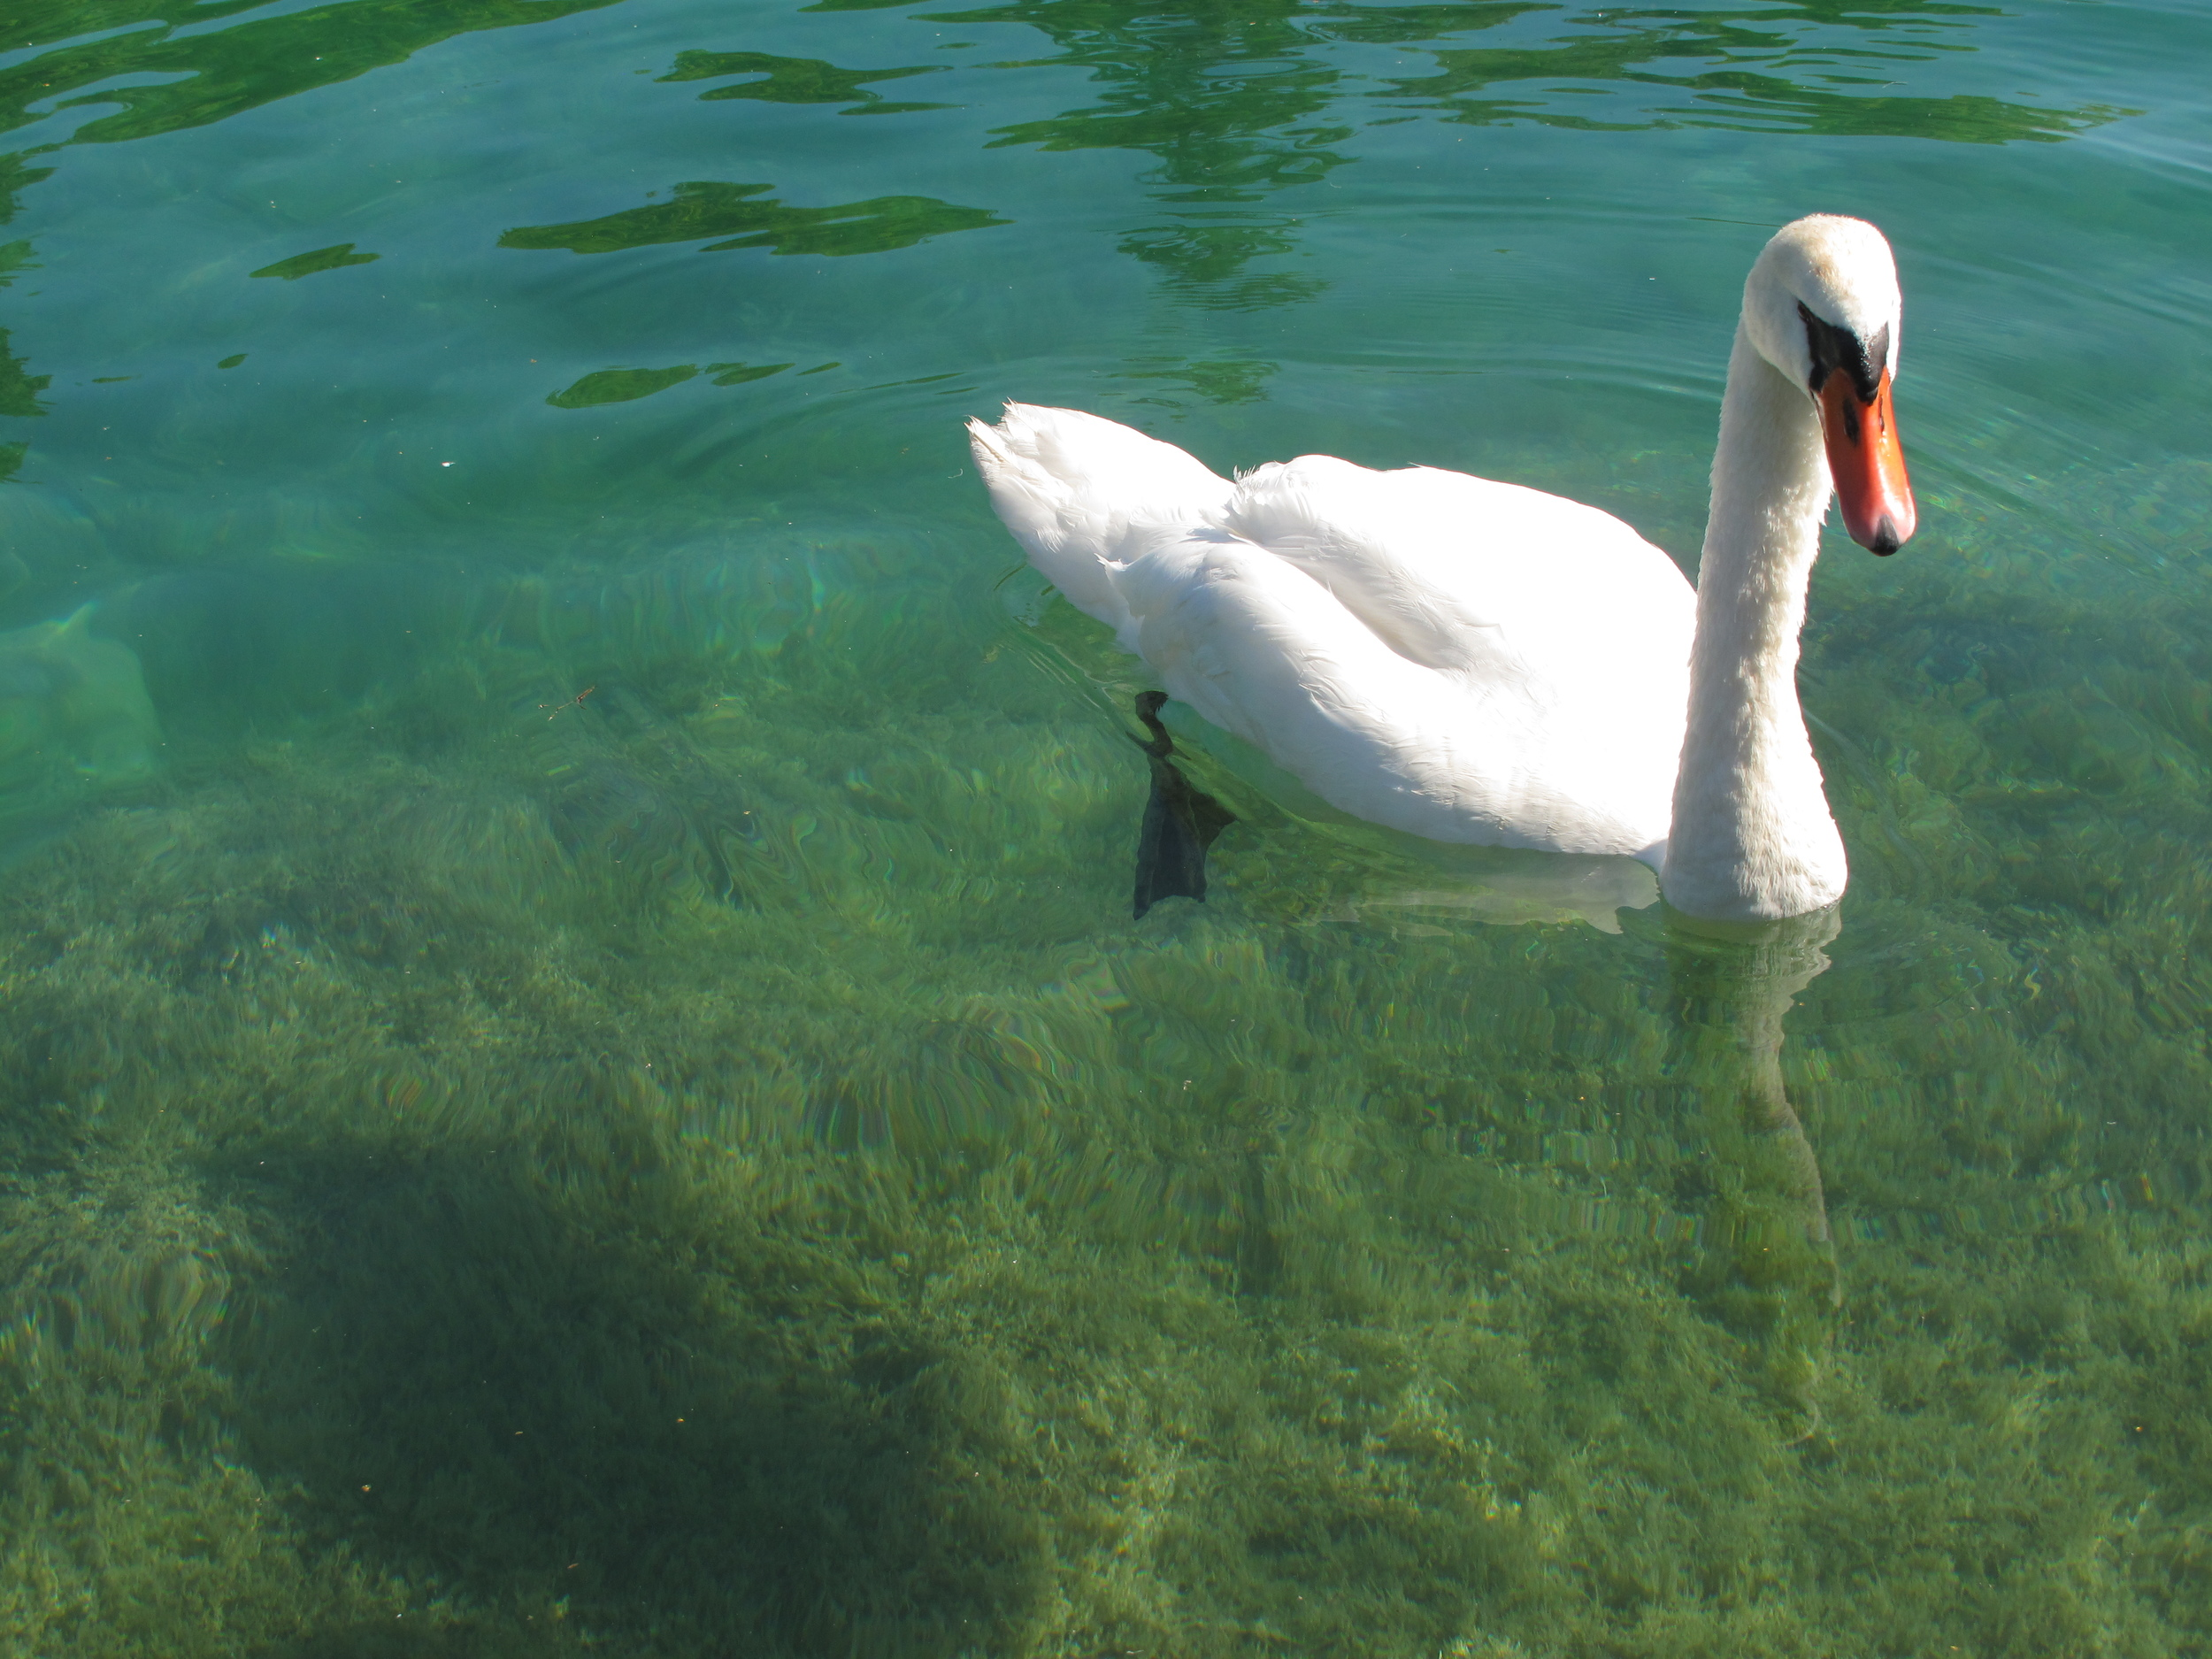 A white swan on the clear waters of lake Annecy